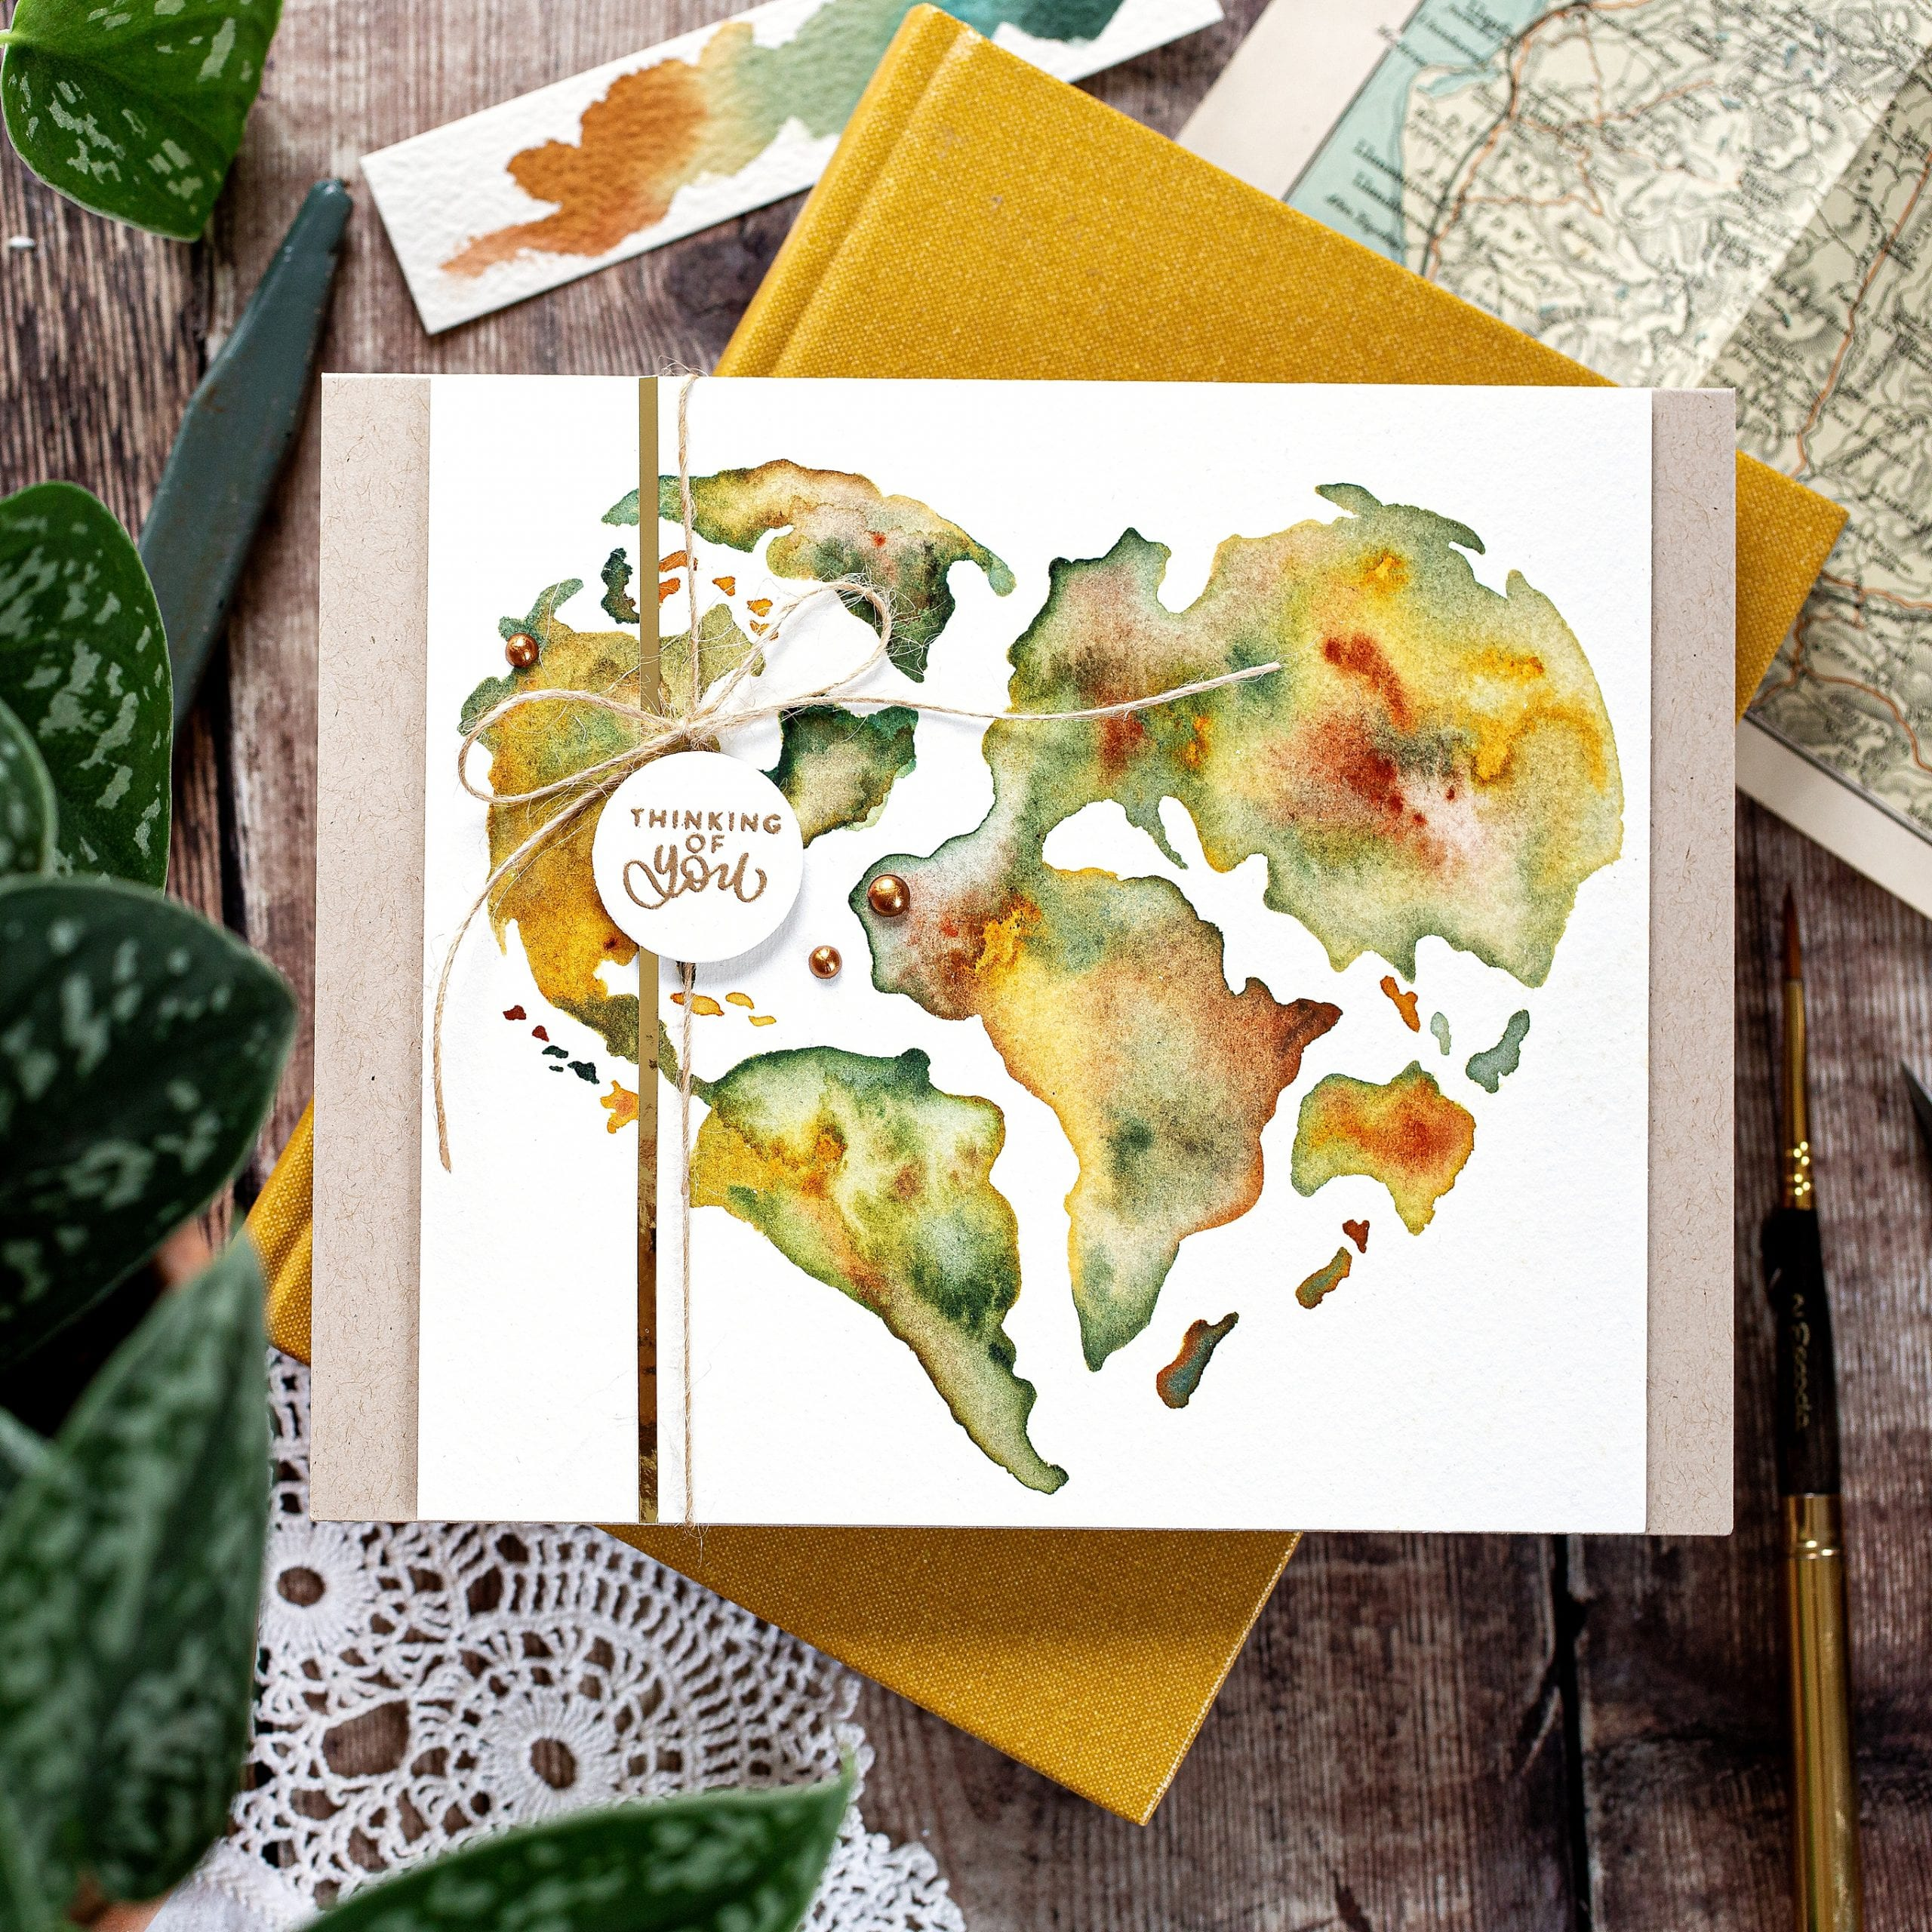 Watercoloured world map tutorial, handmade card by Debby Hughes using supplies from Simon Says Stamp #watercolor #homemade